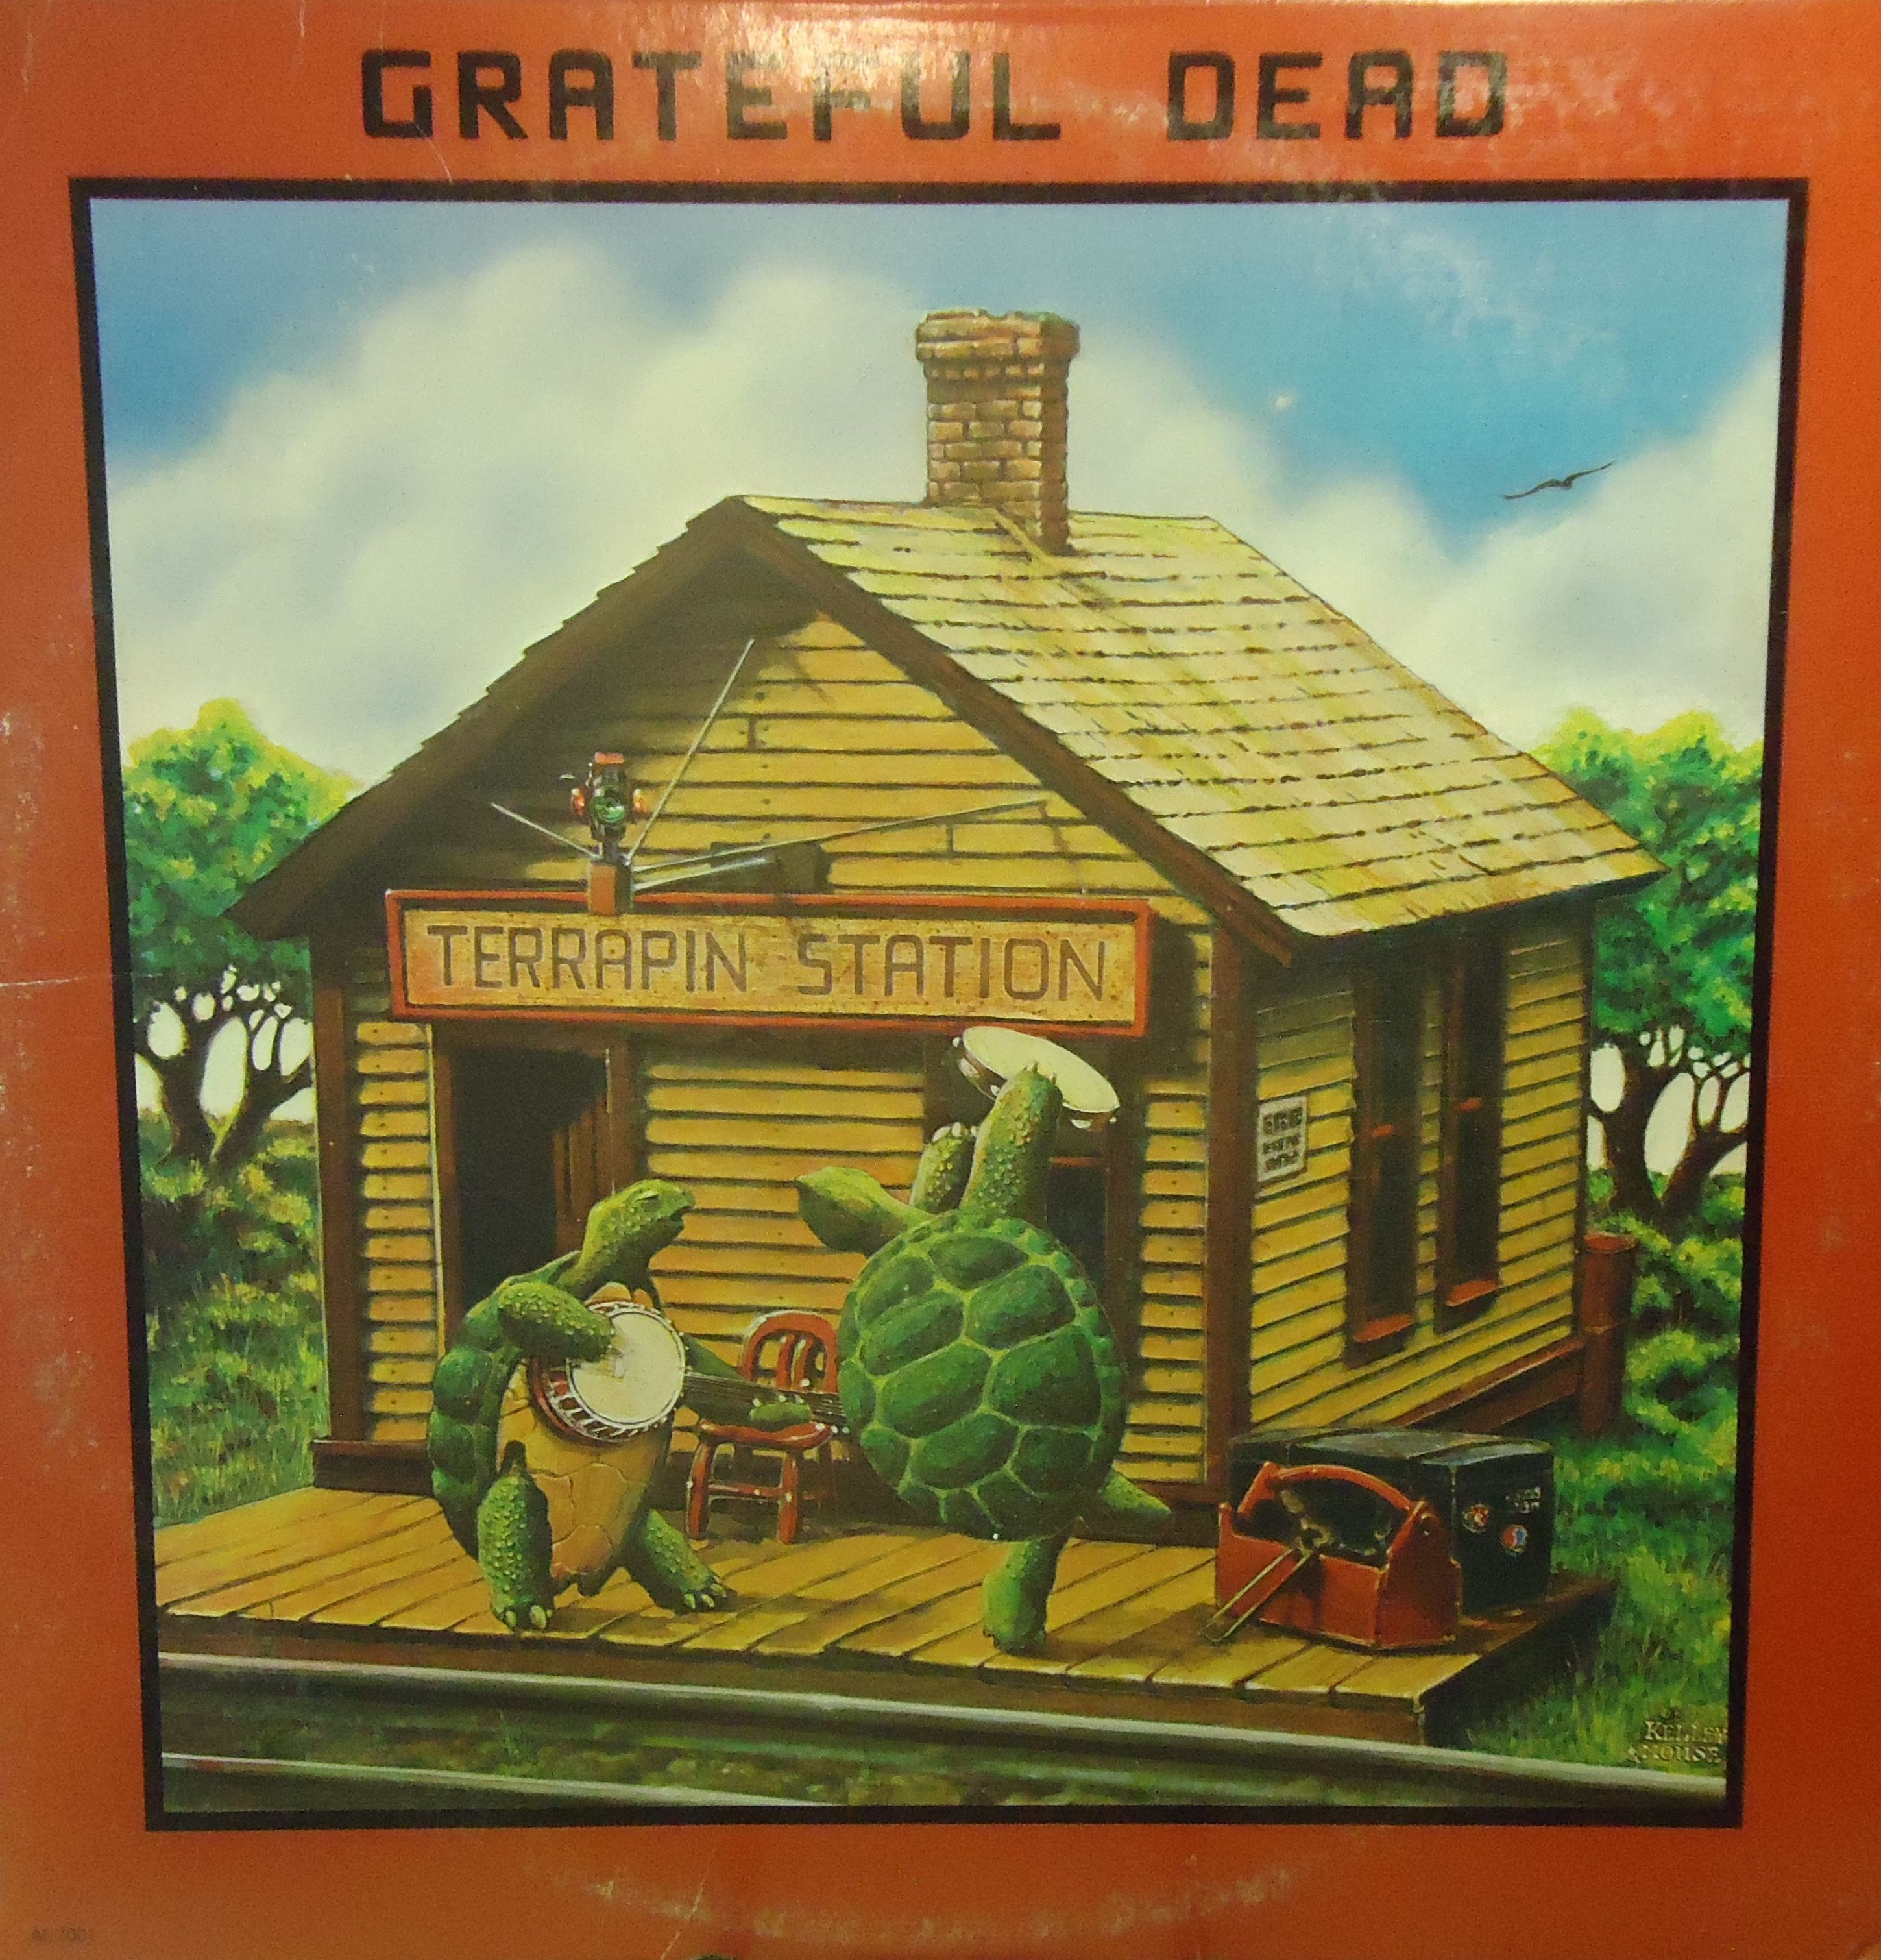 Pin By Spinning Turning Grooving On Grateful Dead Images Grateful Dead Image Vinyl Records Earth Wind Fire